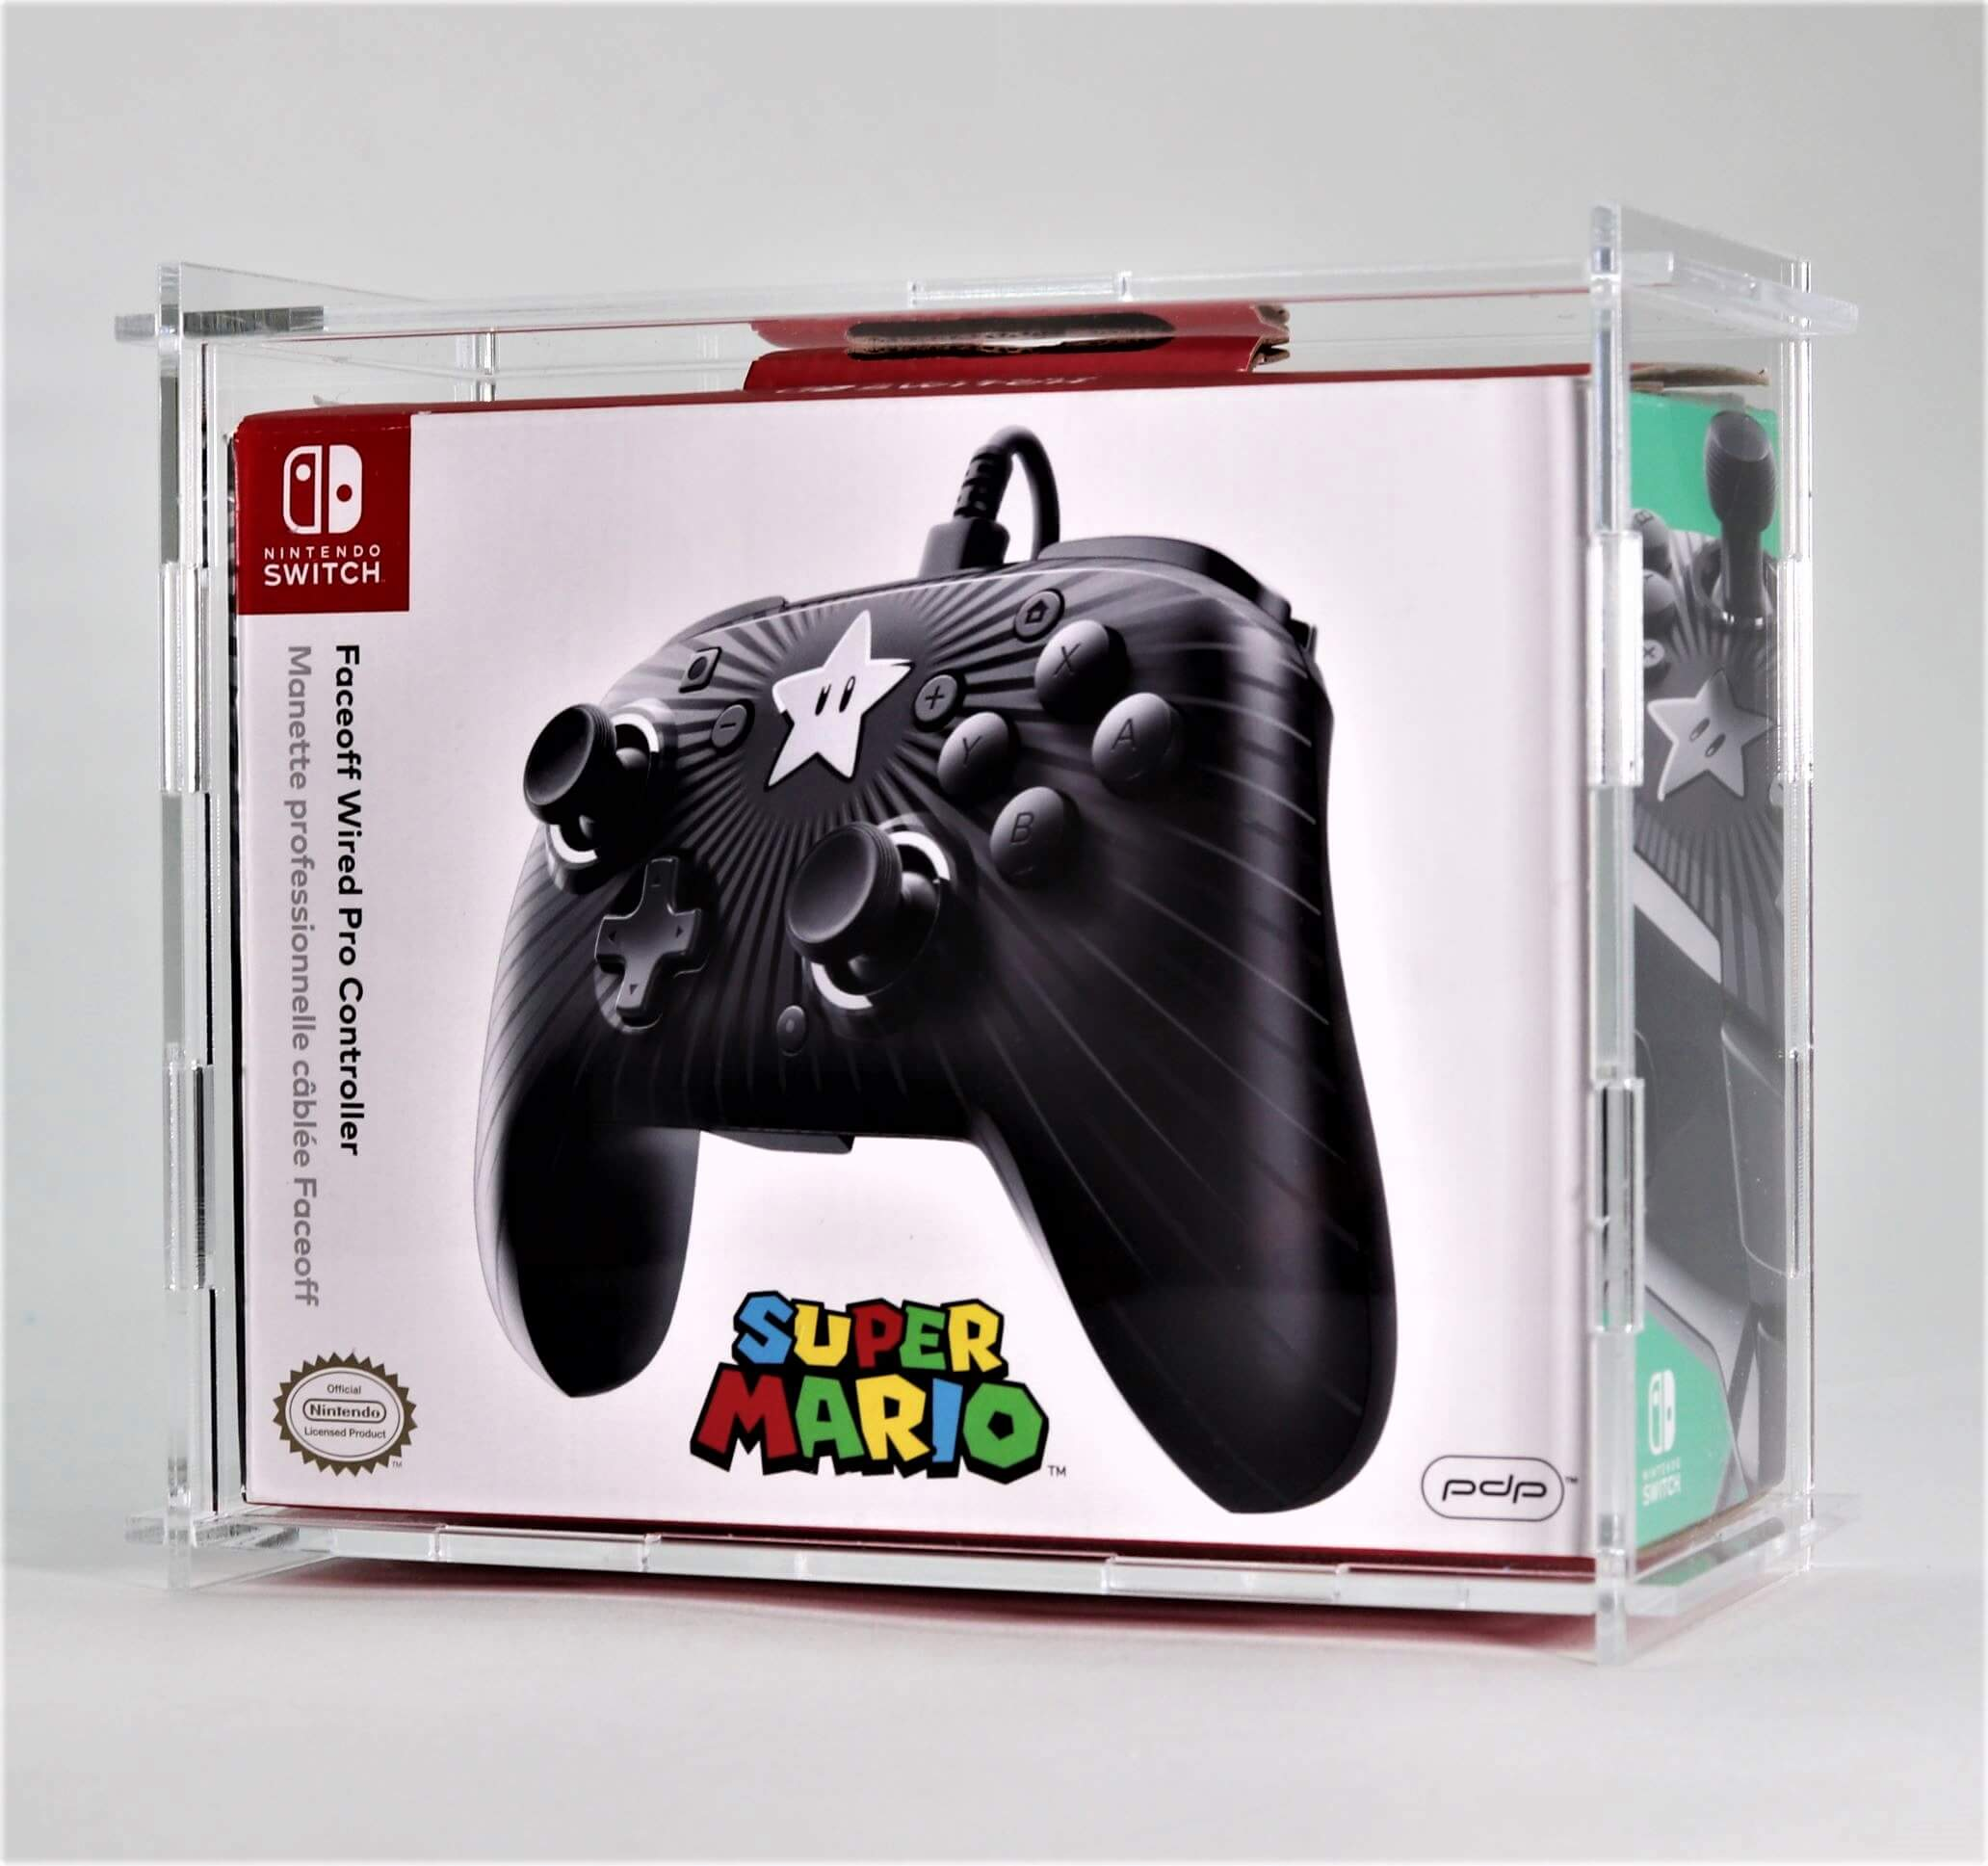 Clear Acrylic Nintendo Switch Boxed Pro Controller Display Case PDP